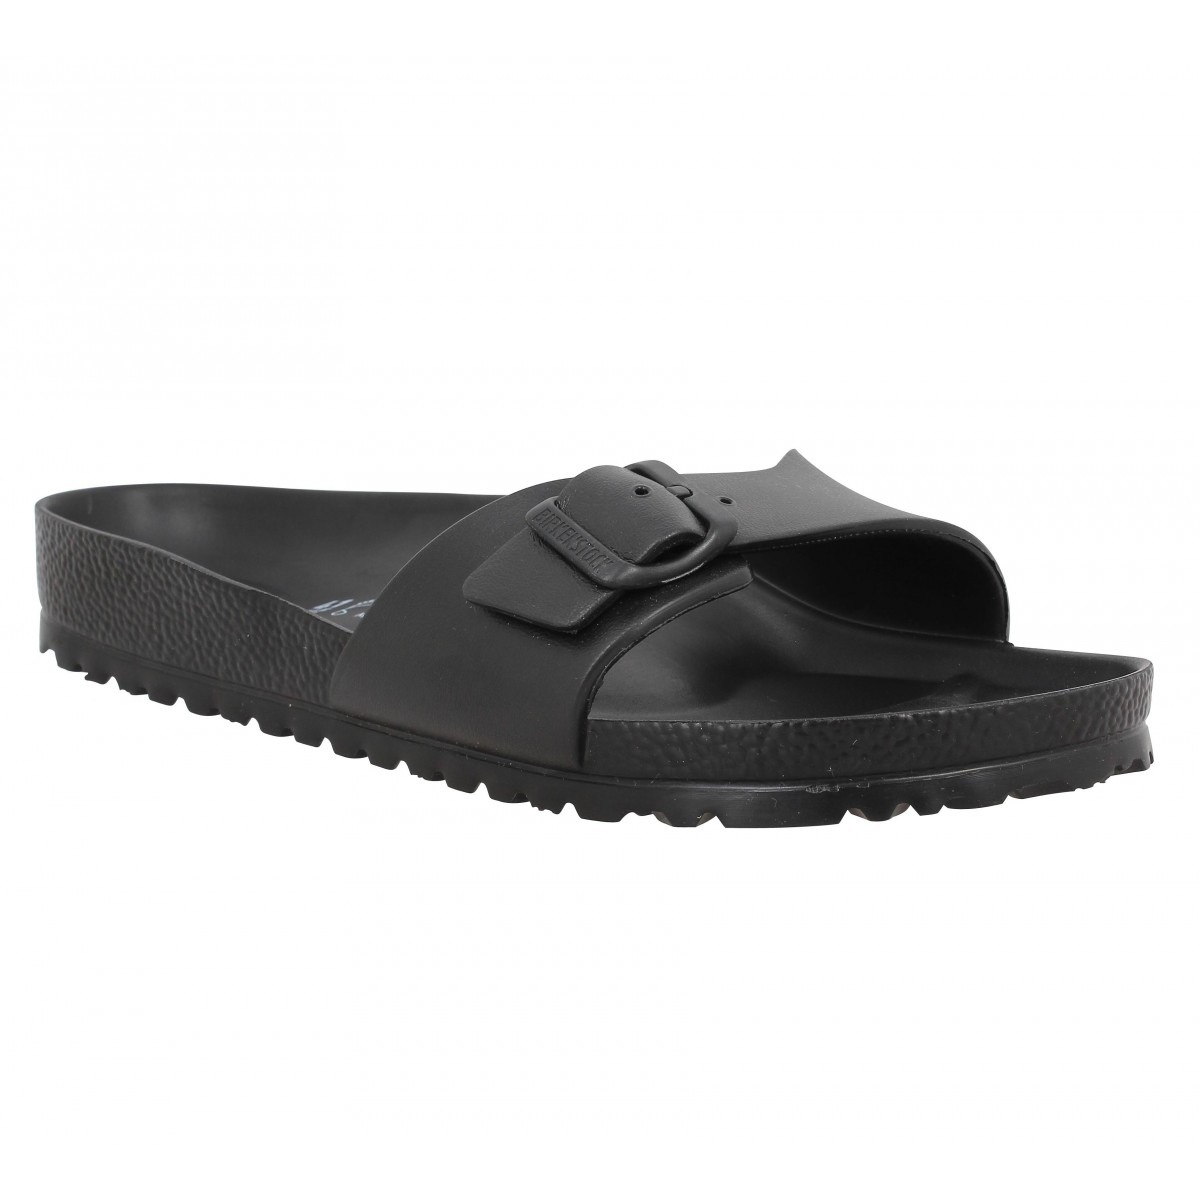 soldes birkenstock madrid eva noir homme fanny chaussures. Black Bedroom Furniture Sets. Home Design Ideas